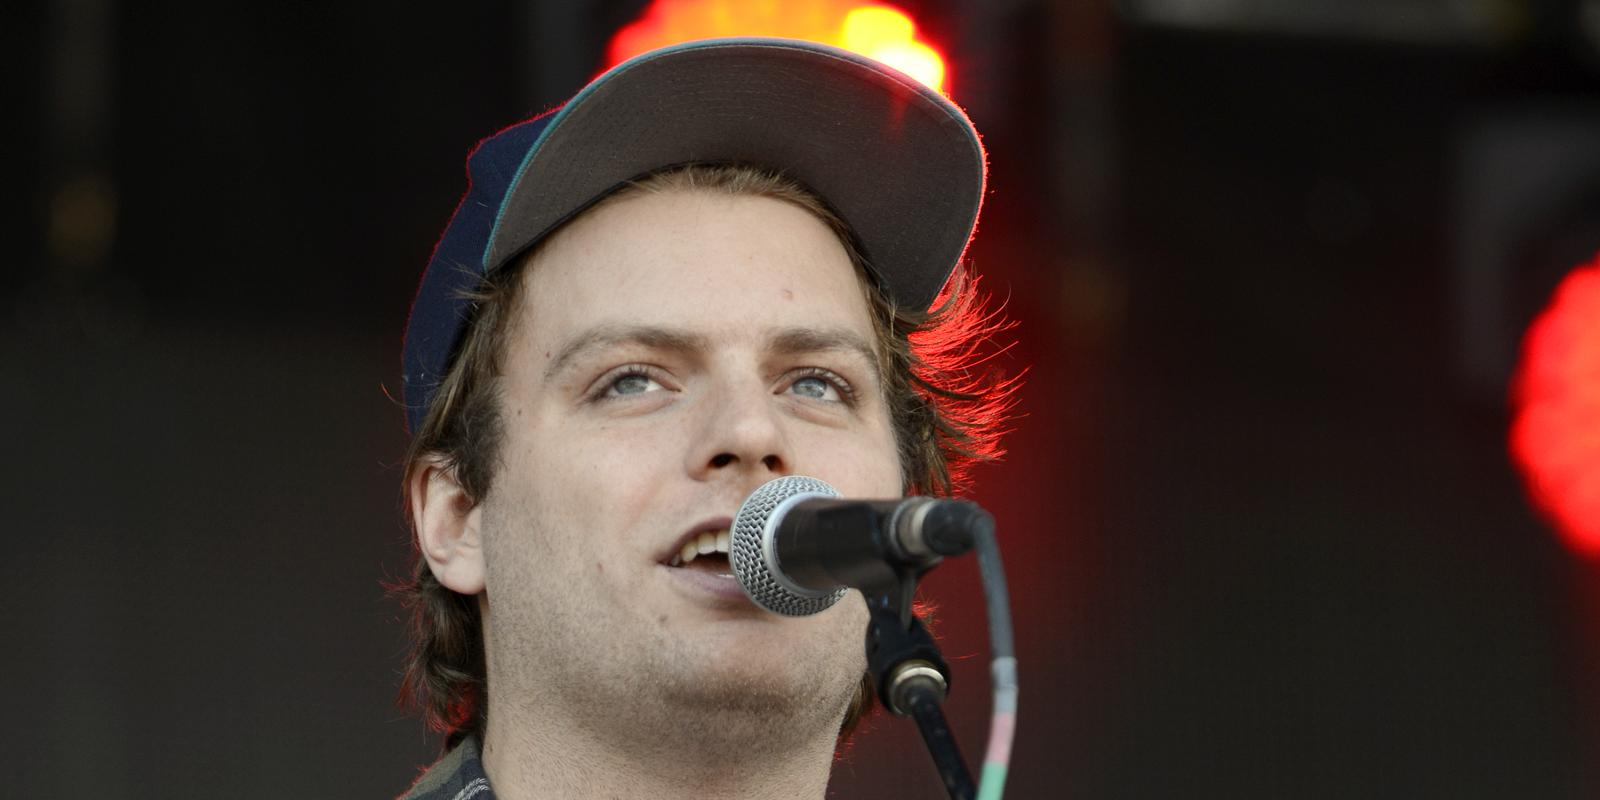 mac demarco arrested during live performance